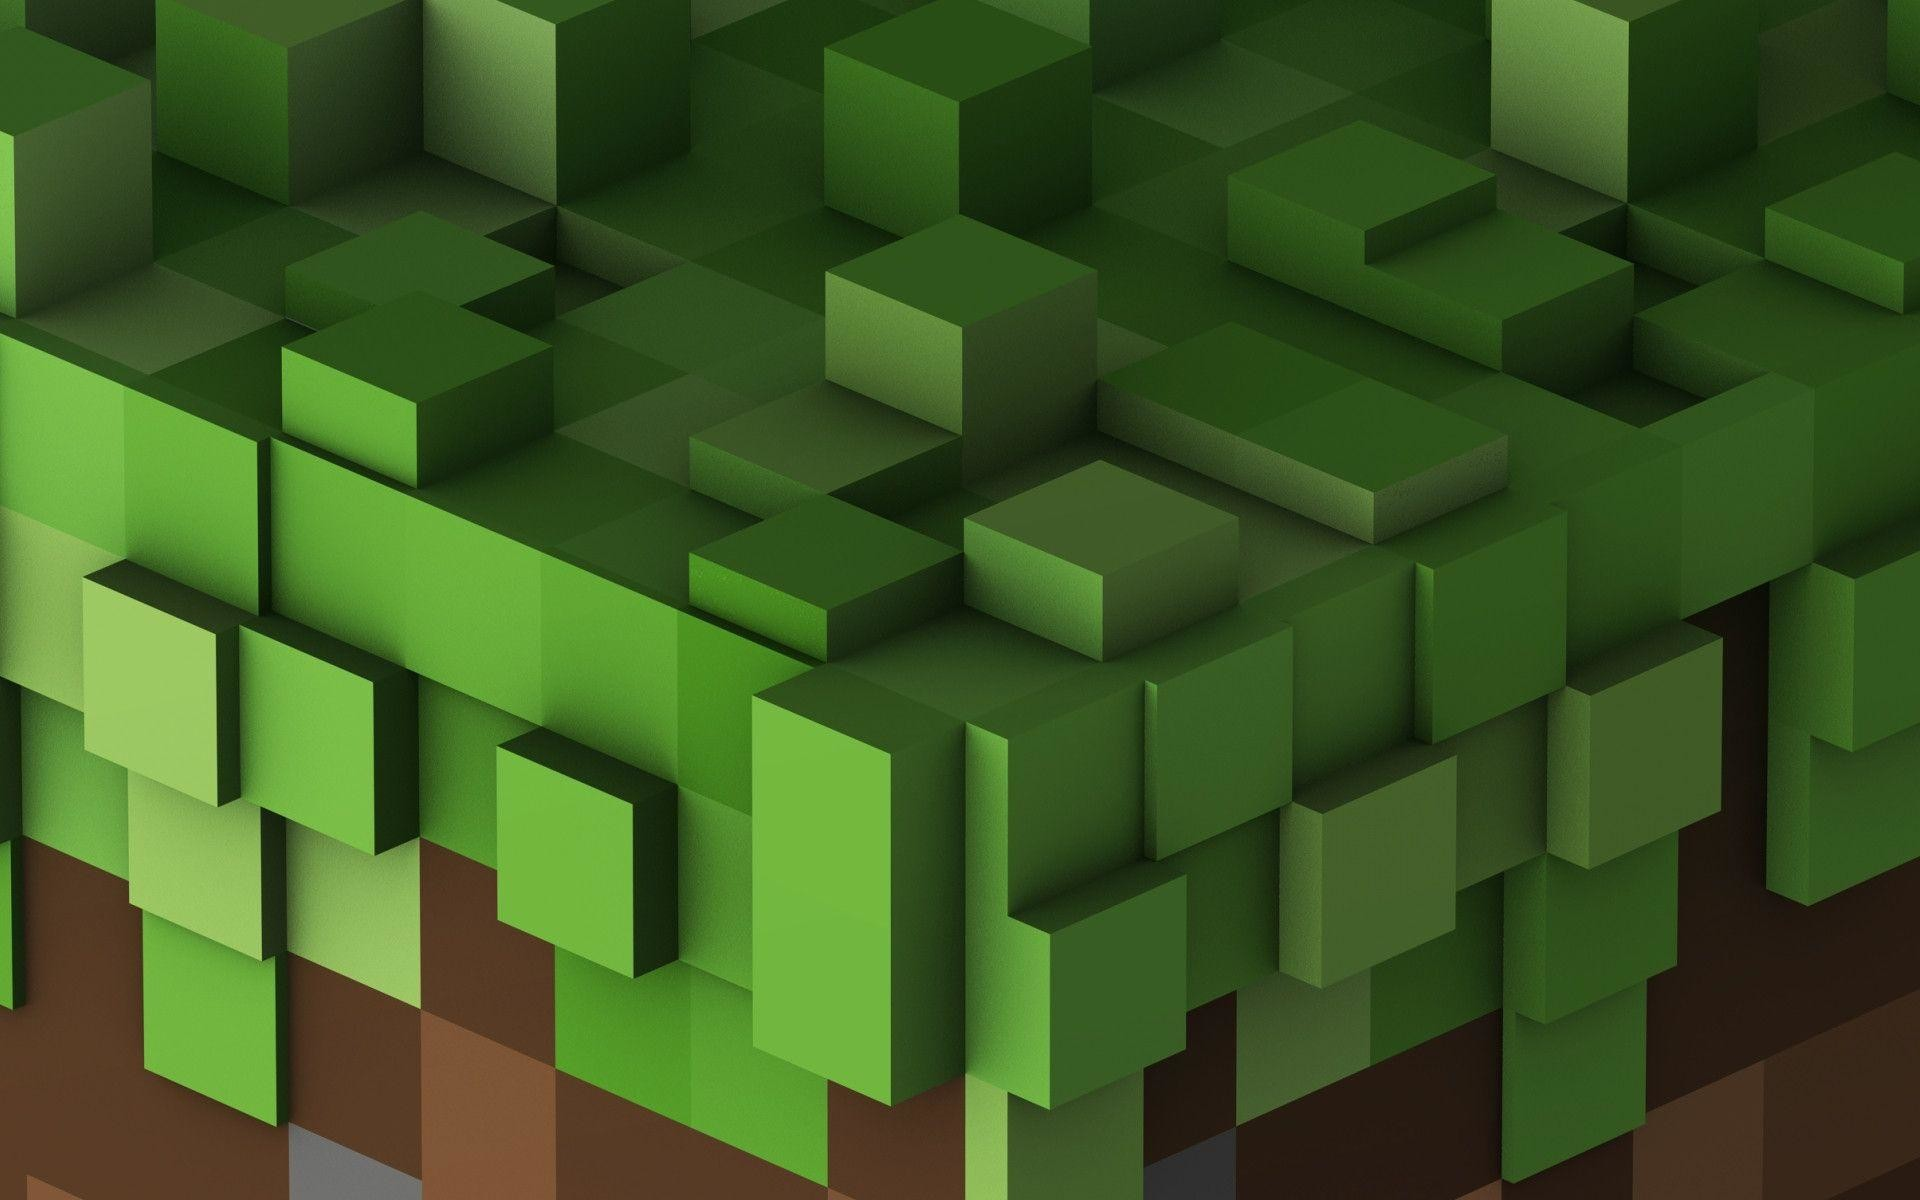 1920x1200 225 Minecraft Wallpapers | Minecraft Backgrounds